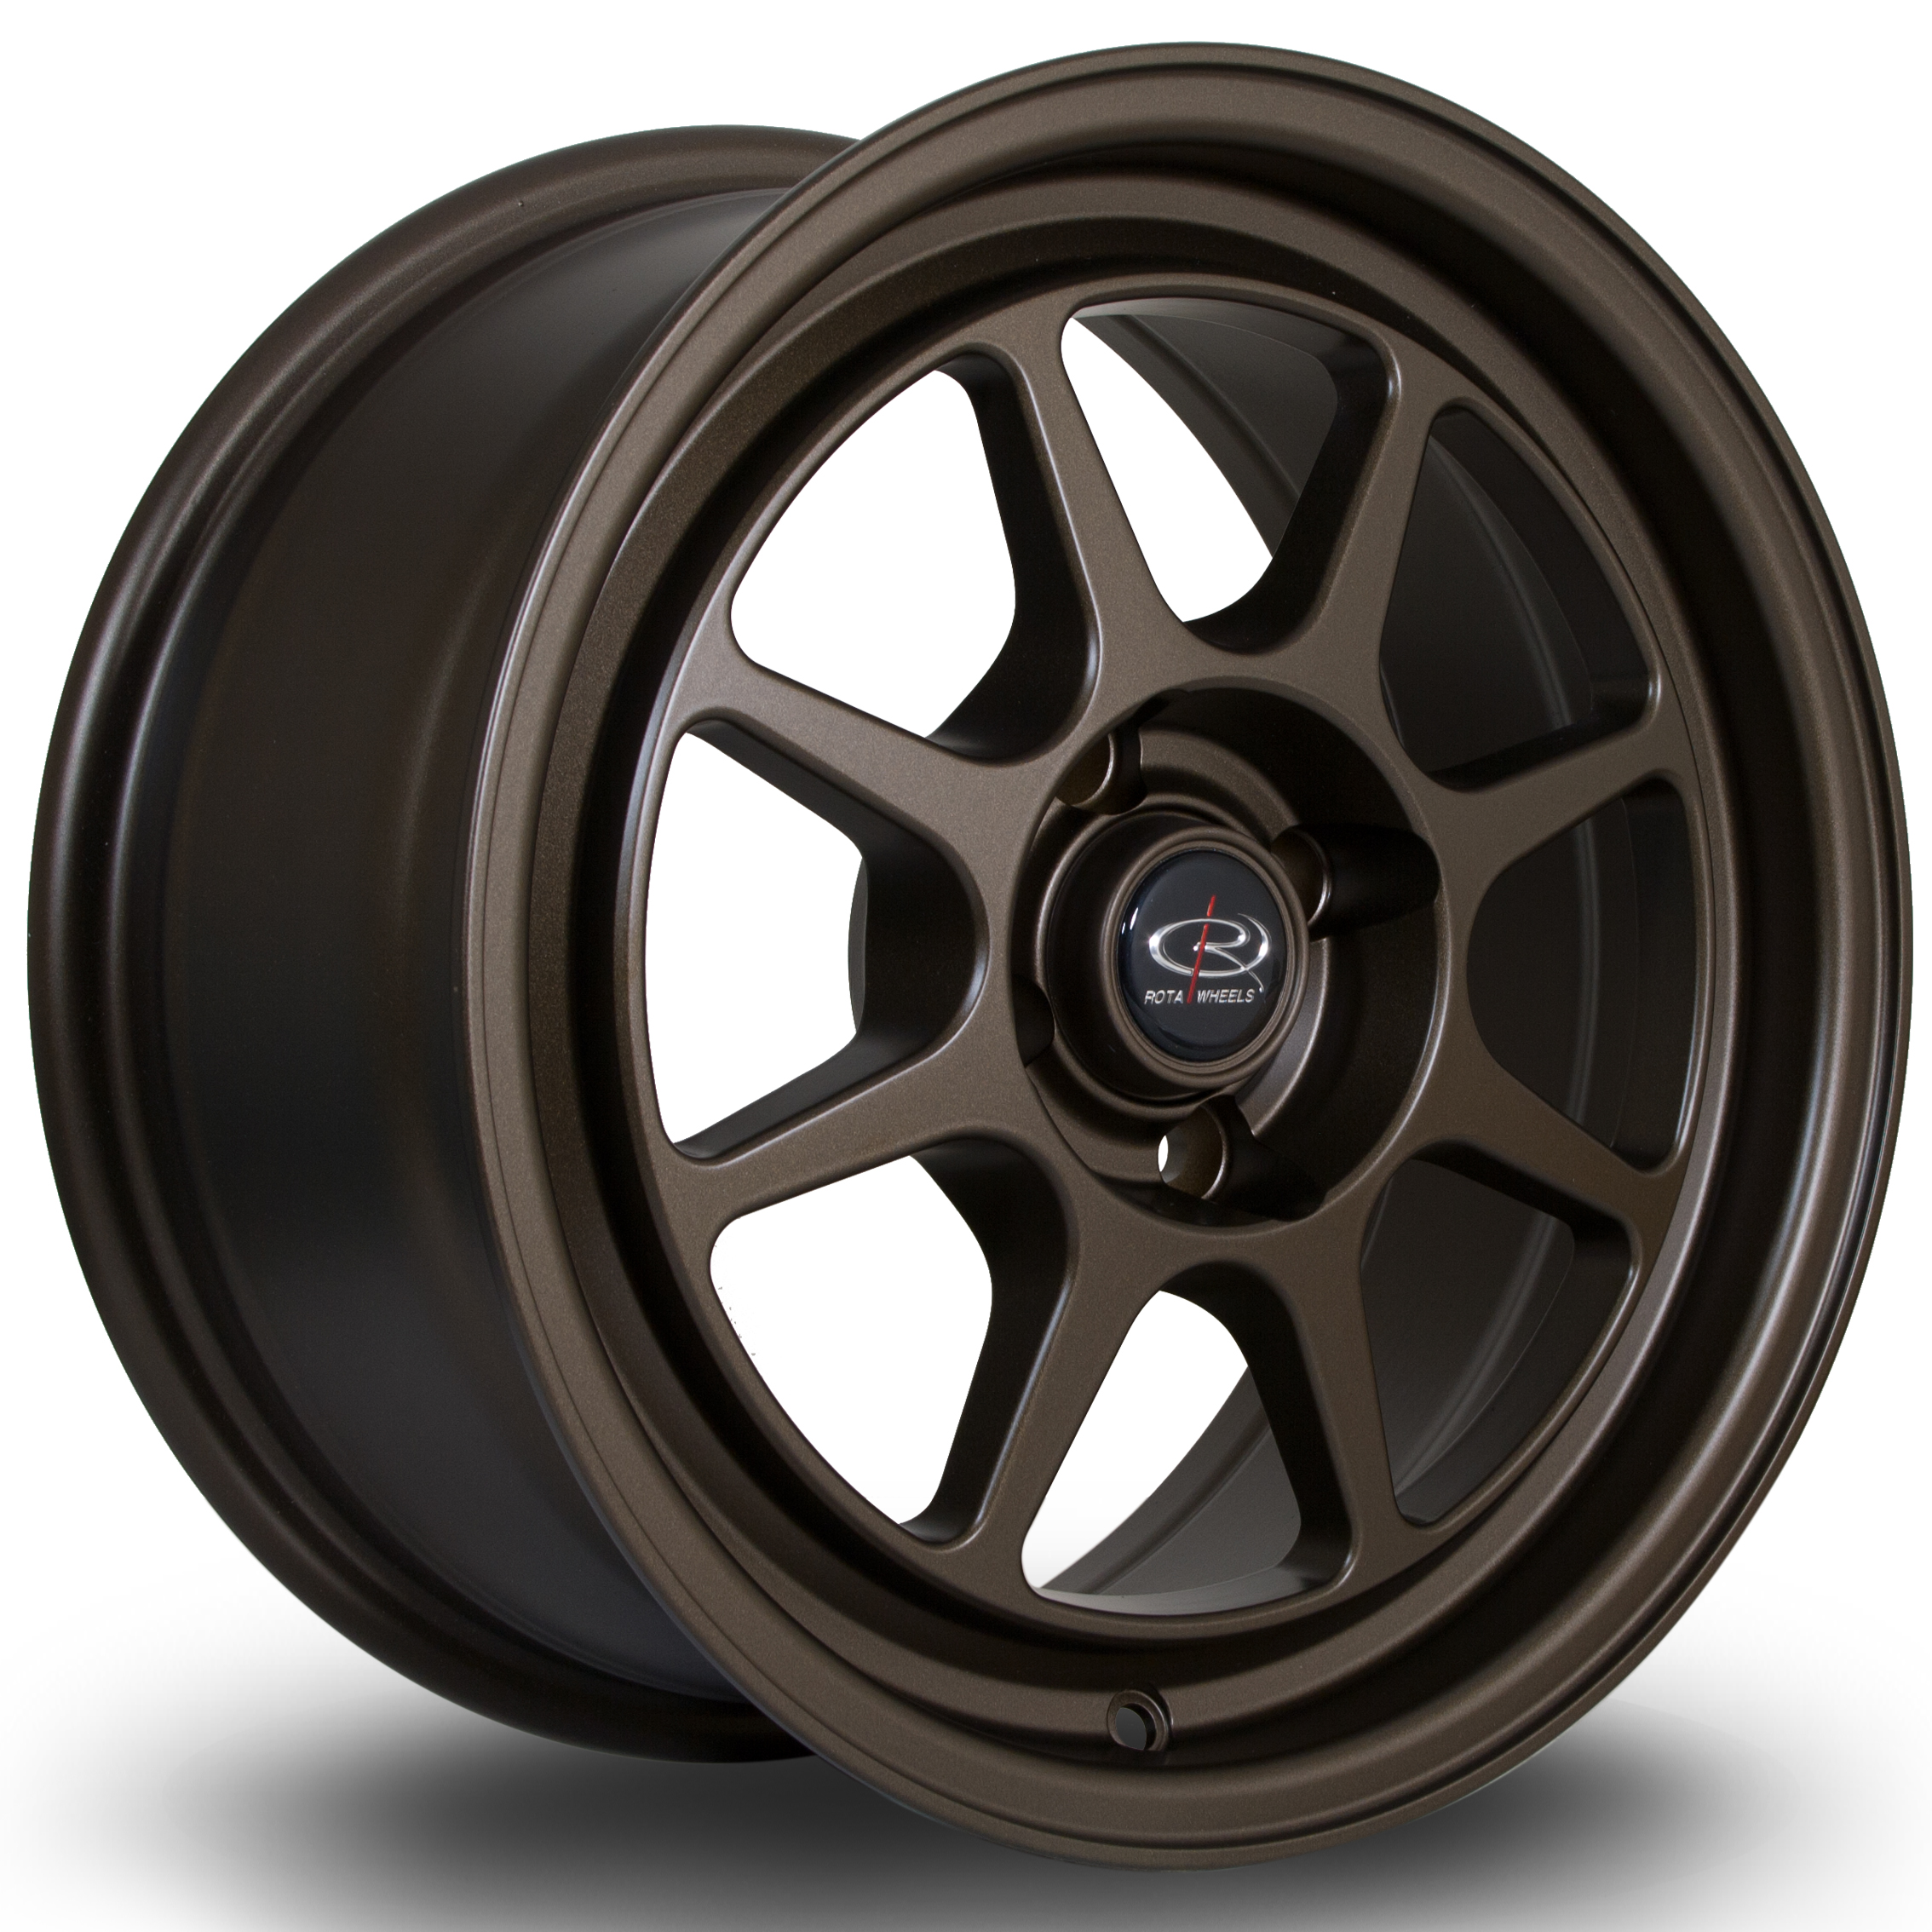 Rota Spec 8 wheels